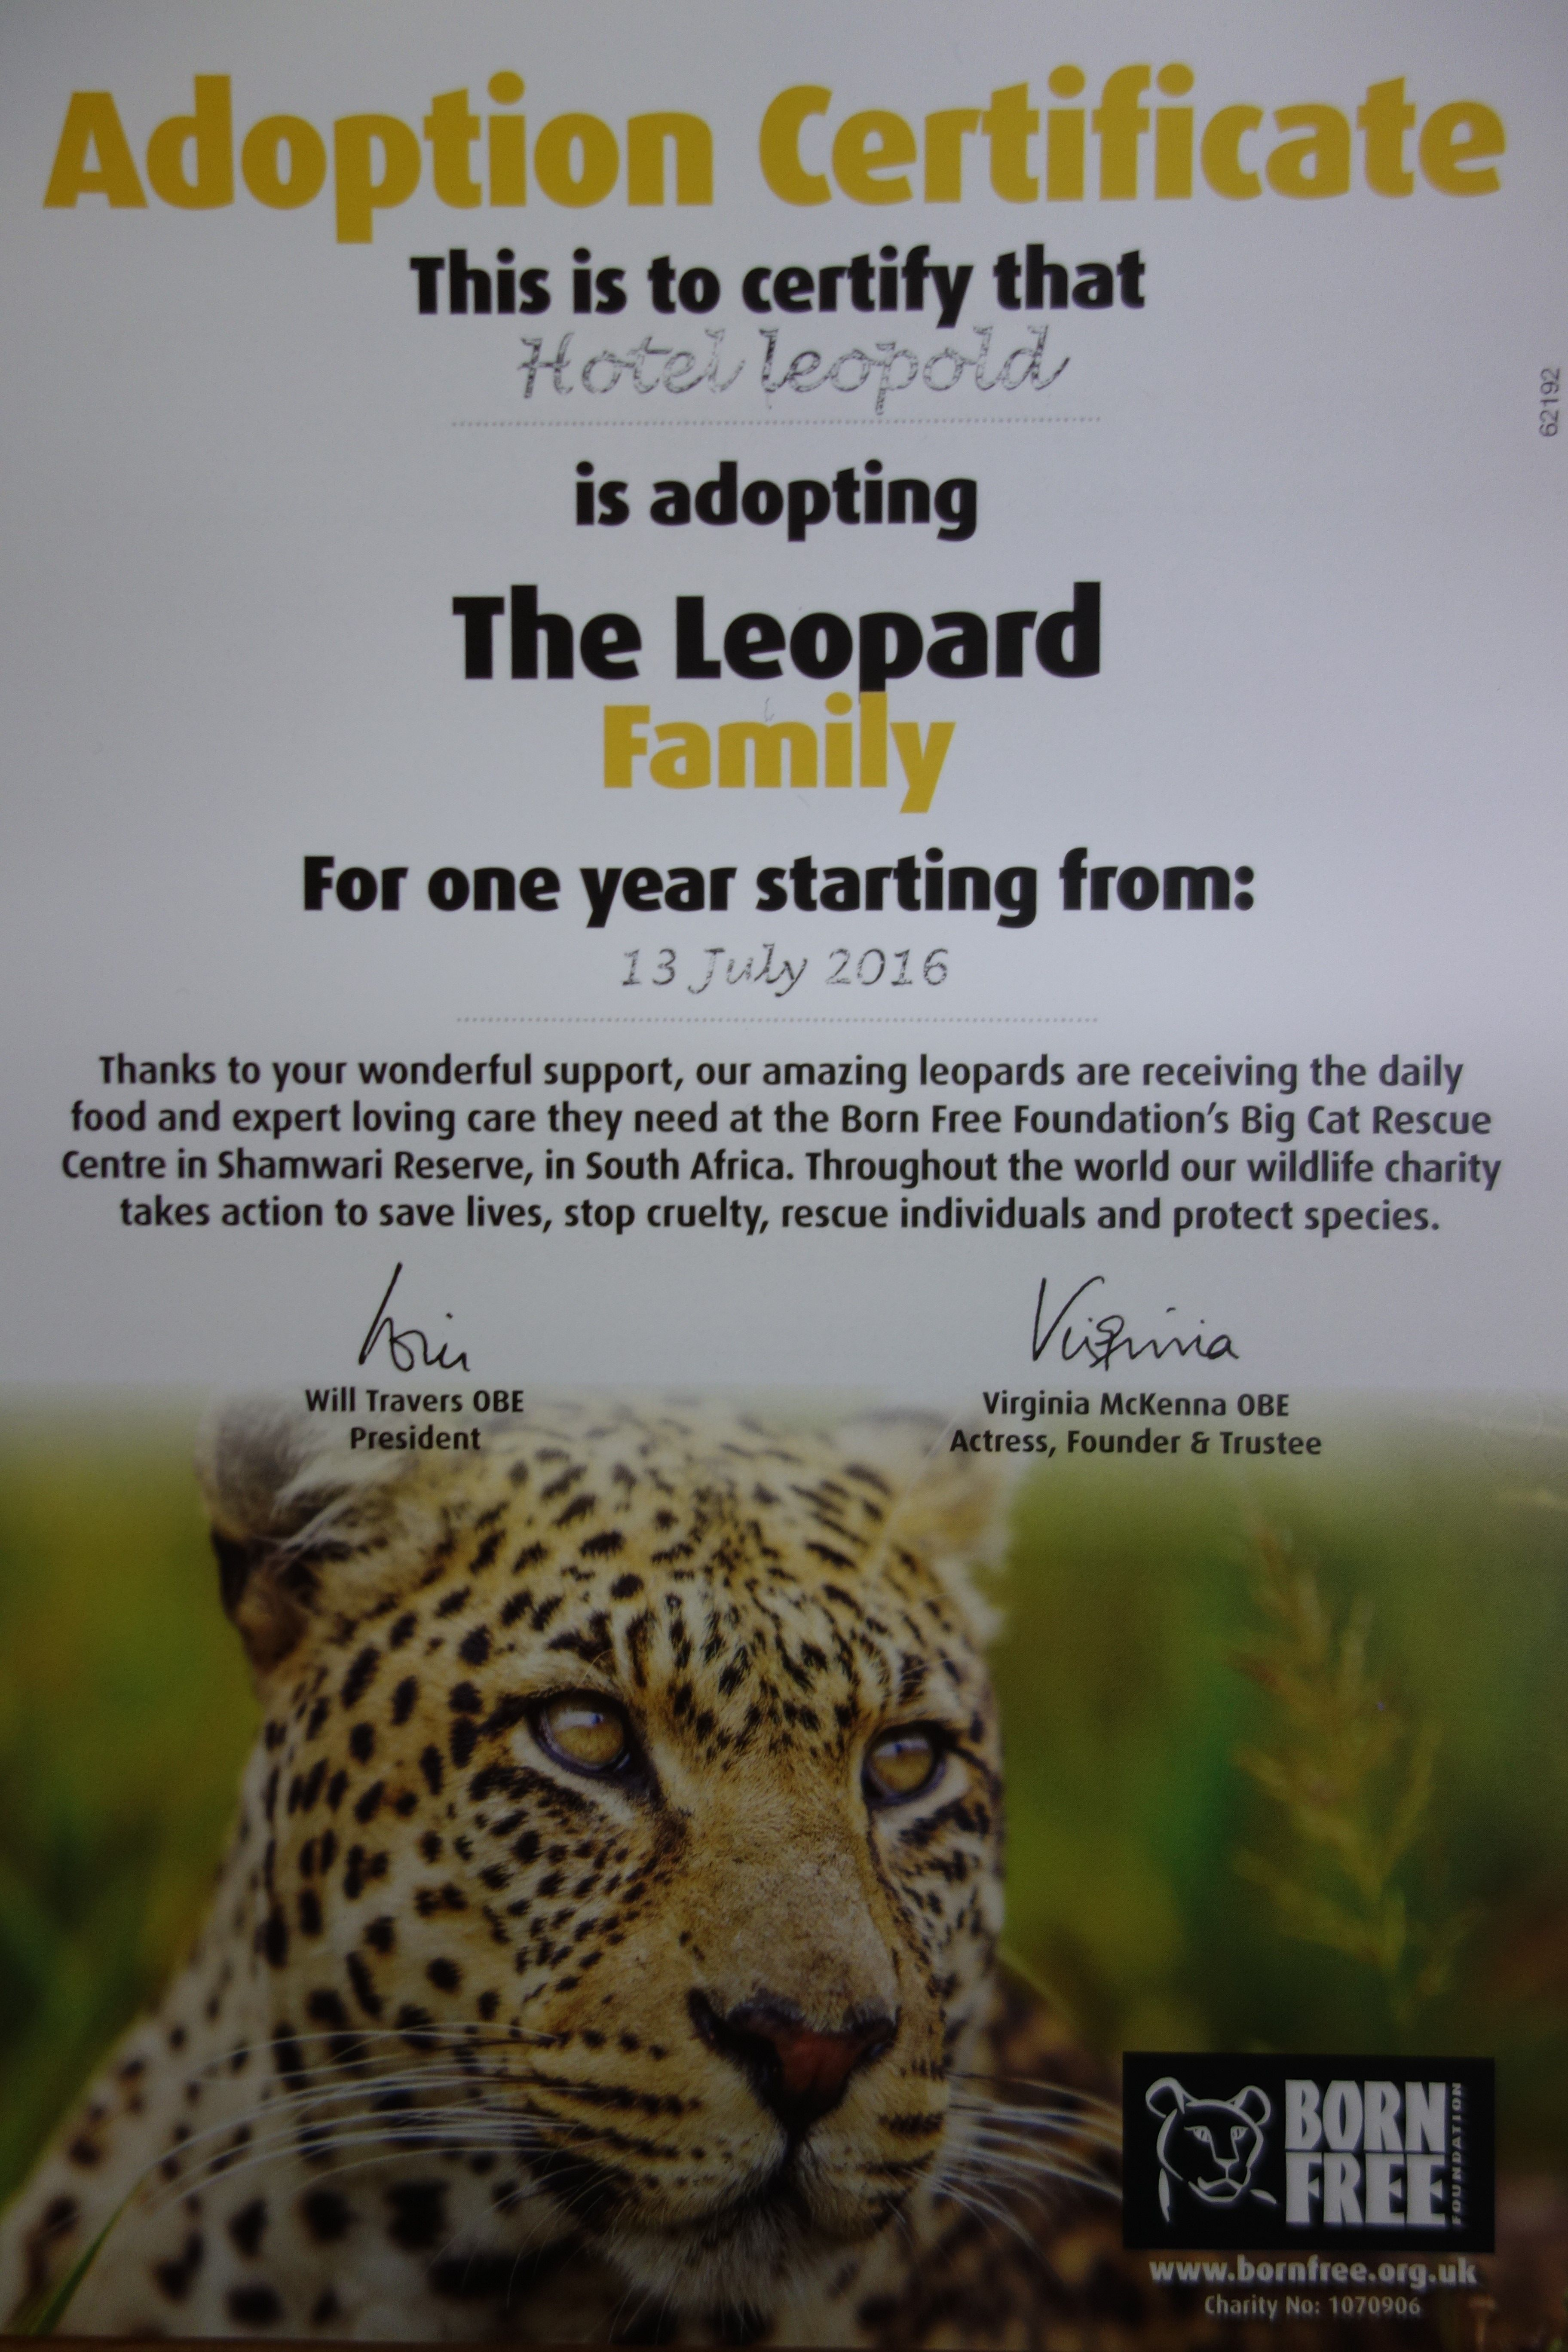 adopt an endangered animal for free